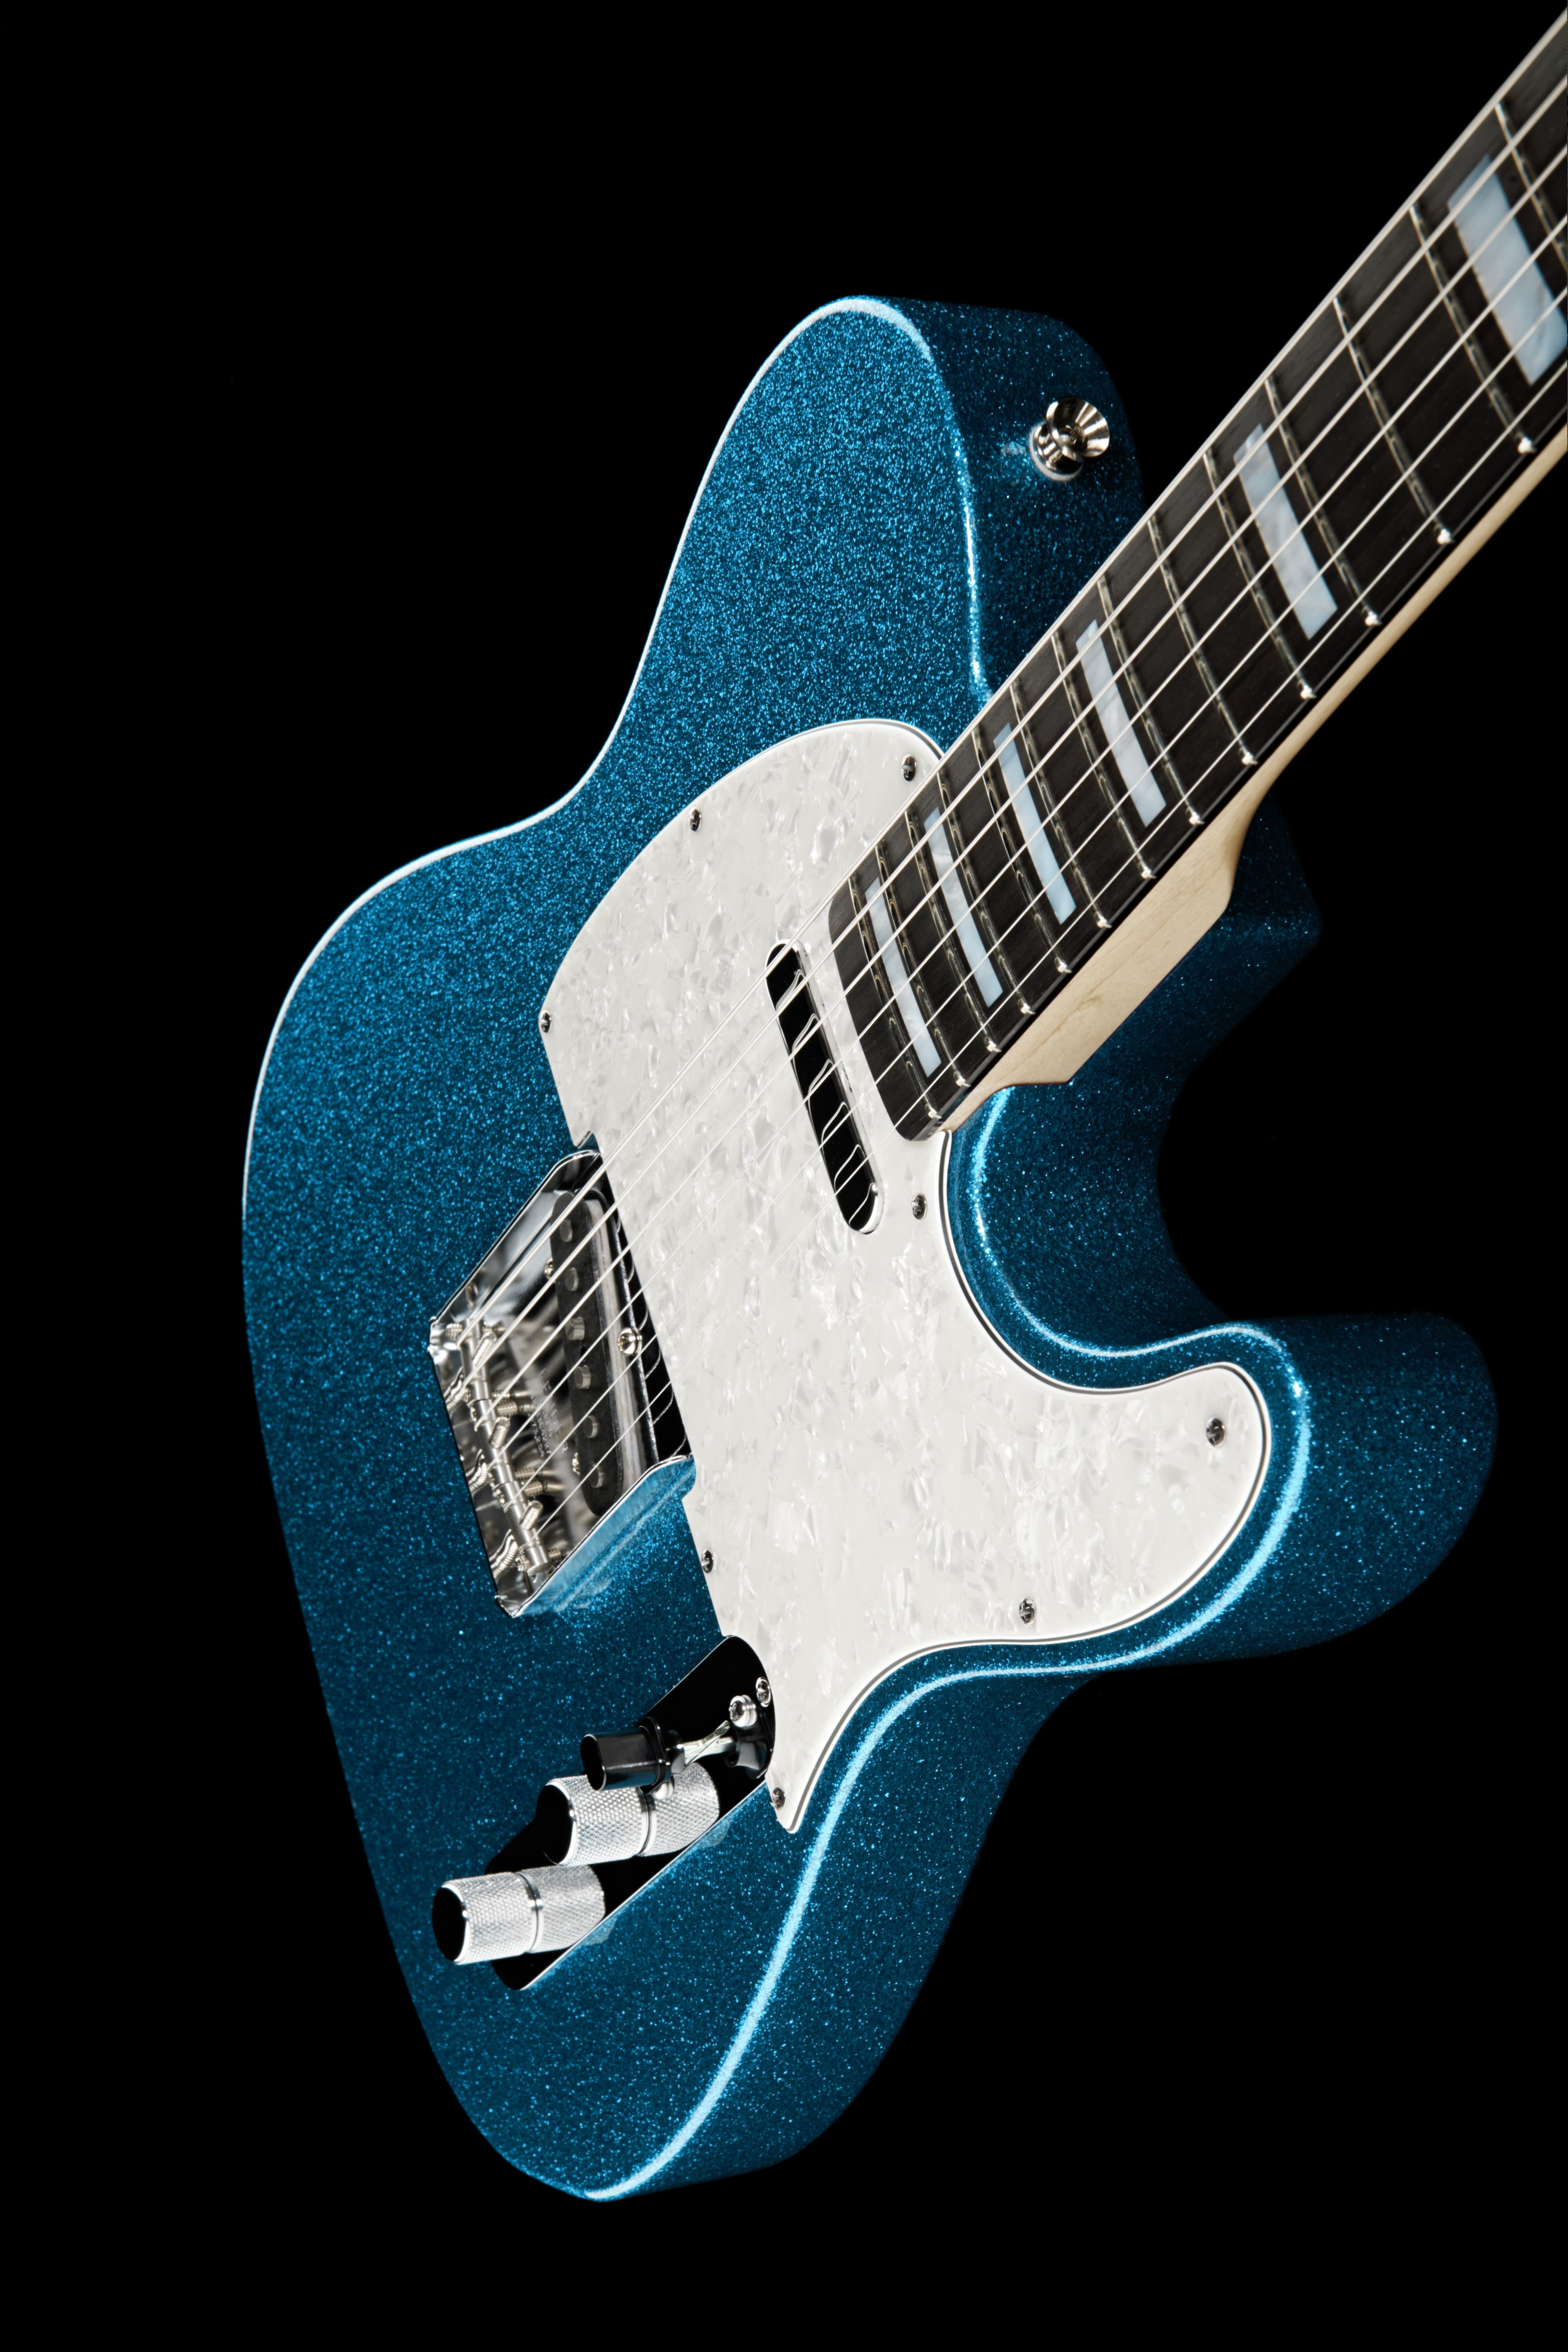 Fender 60 Tele NOS Blue Sparkle MBYS #fender #guitar #thomann #customShop